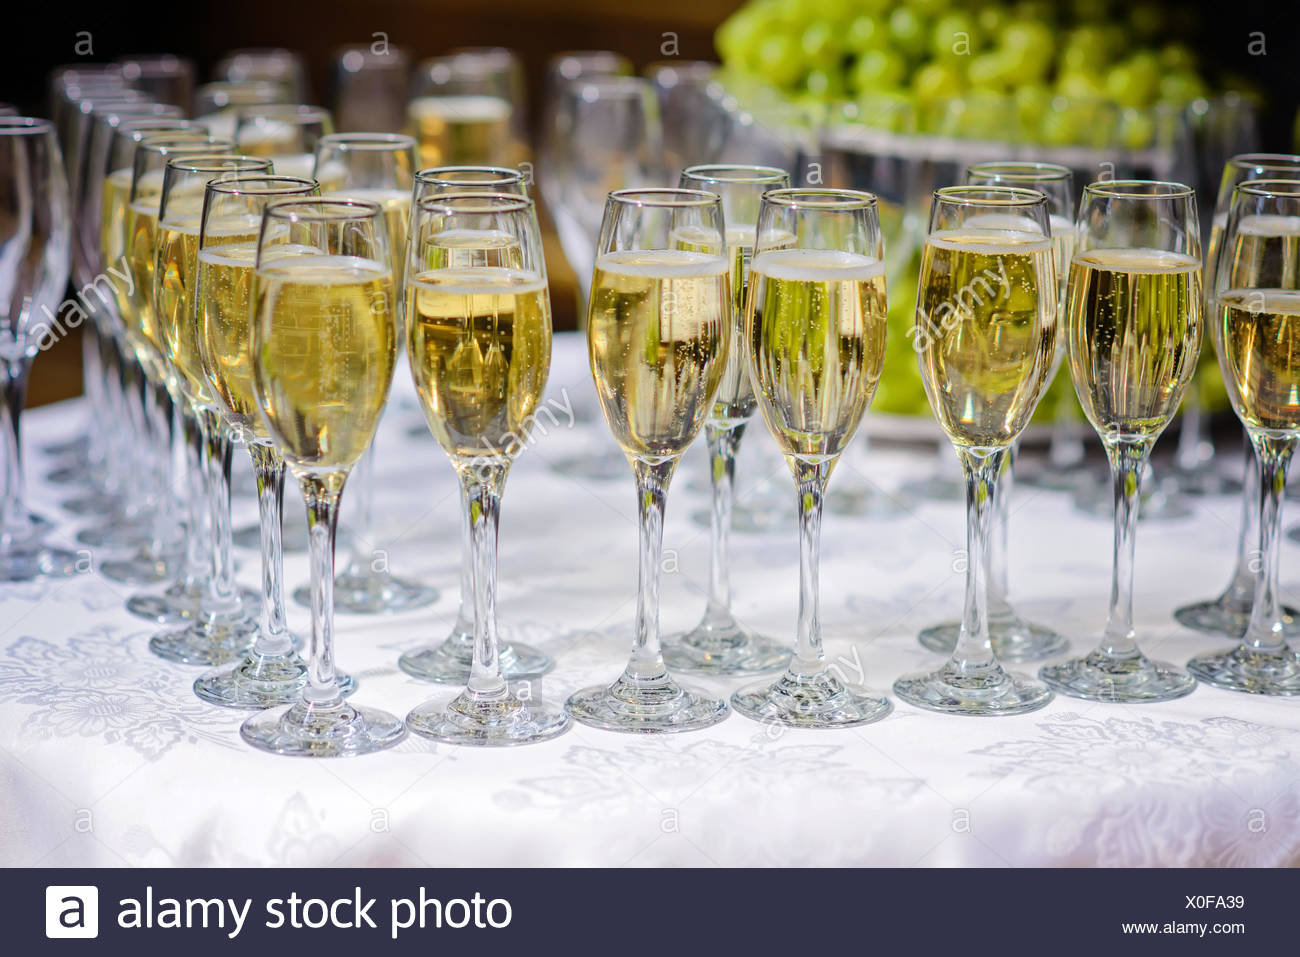 Glasses of champagne waiting for guests - Stock Image